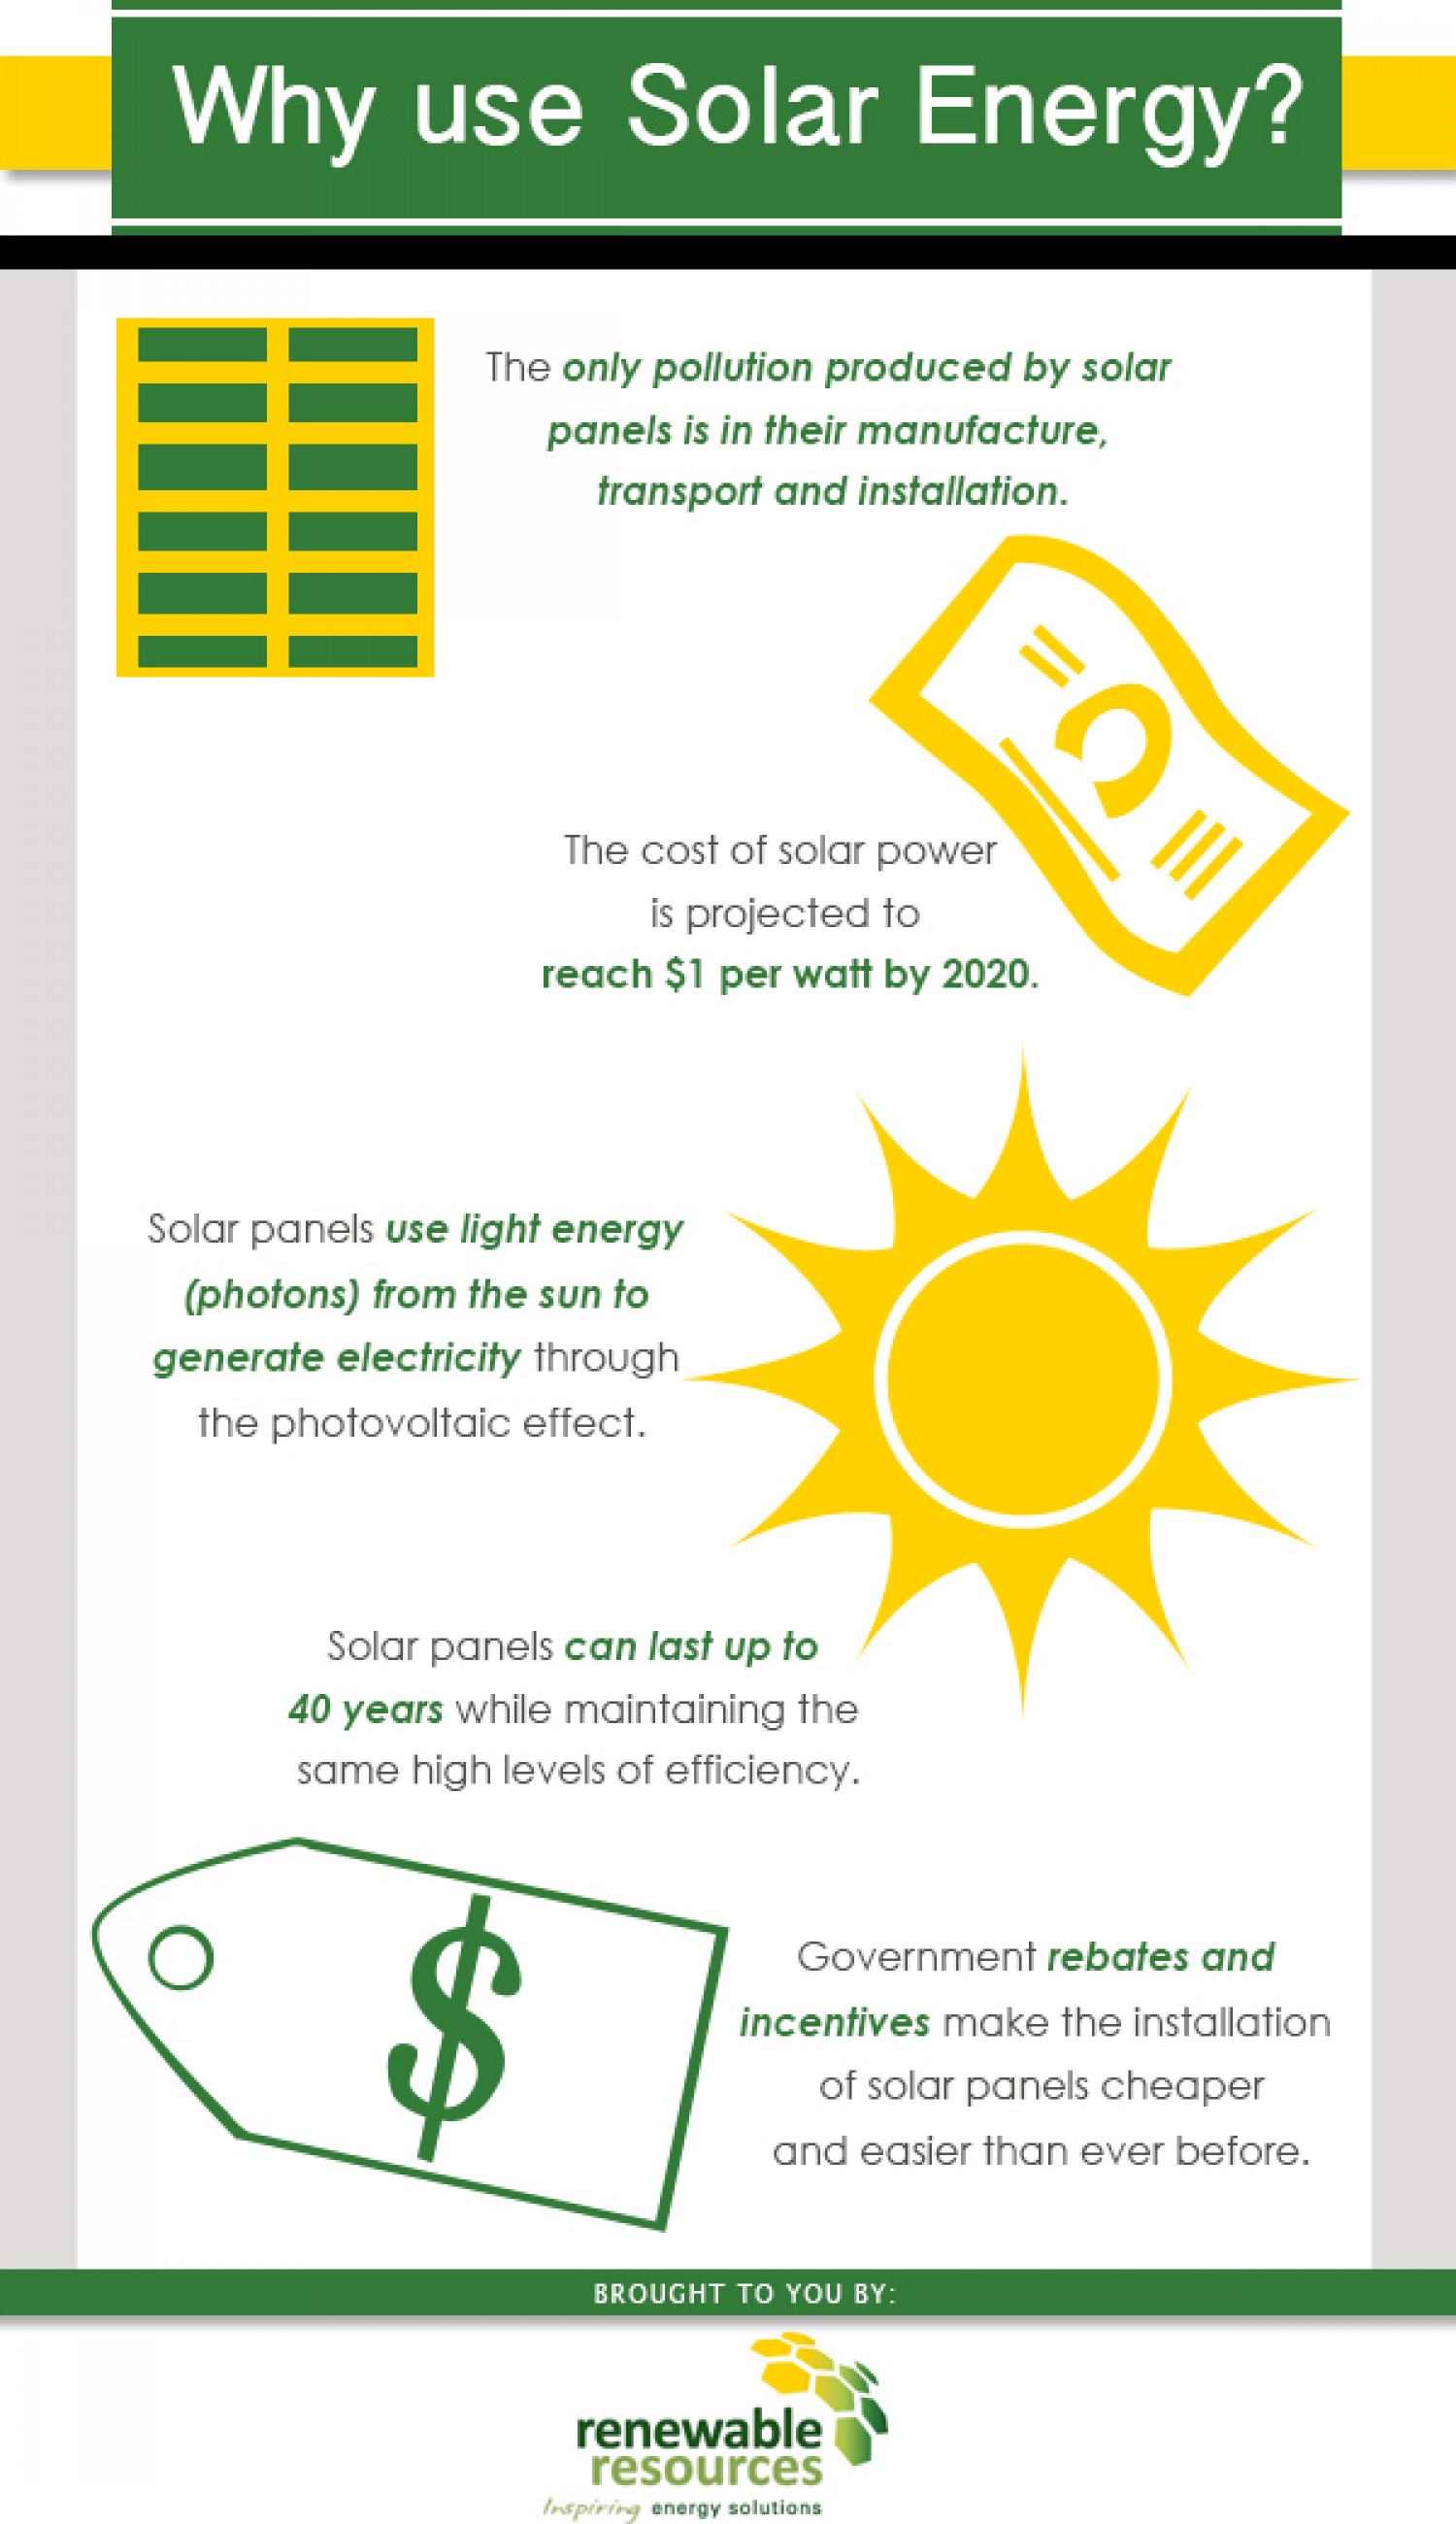 Why Use Solar Energy Infographic